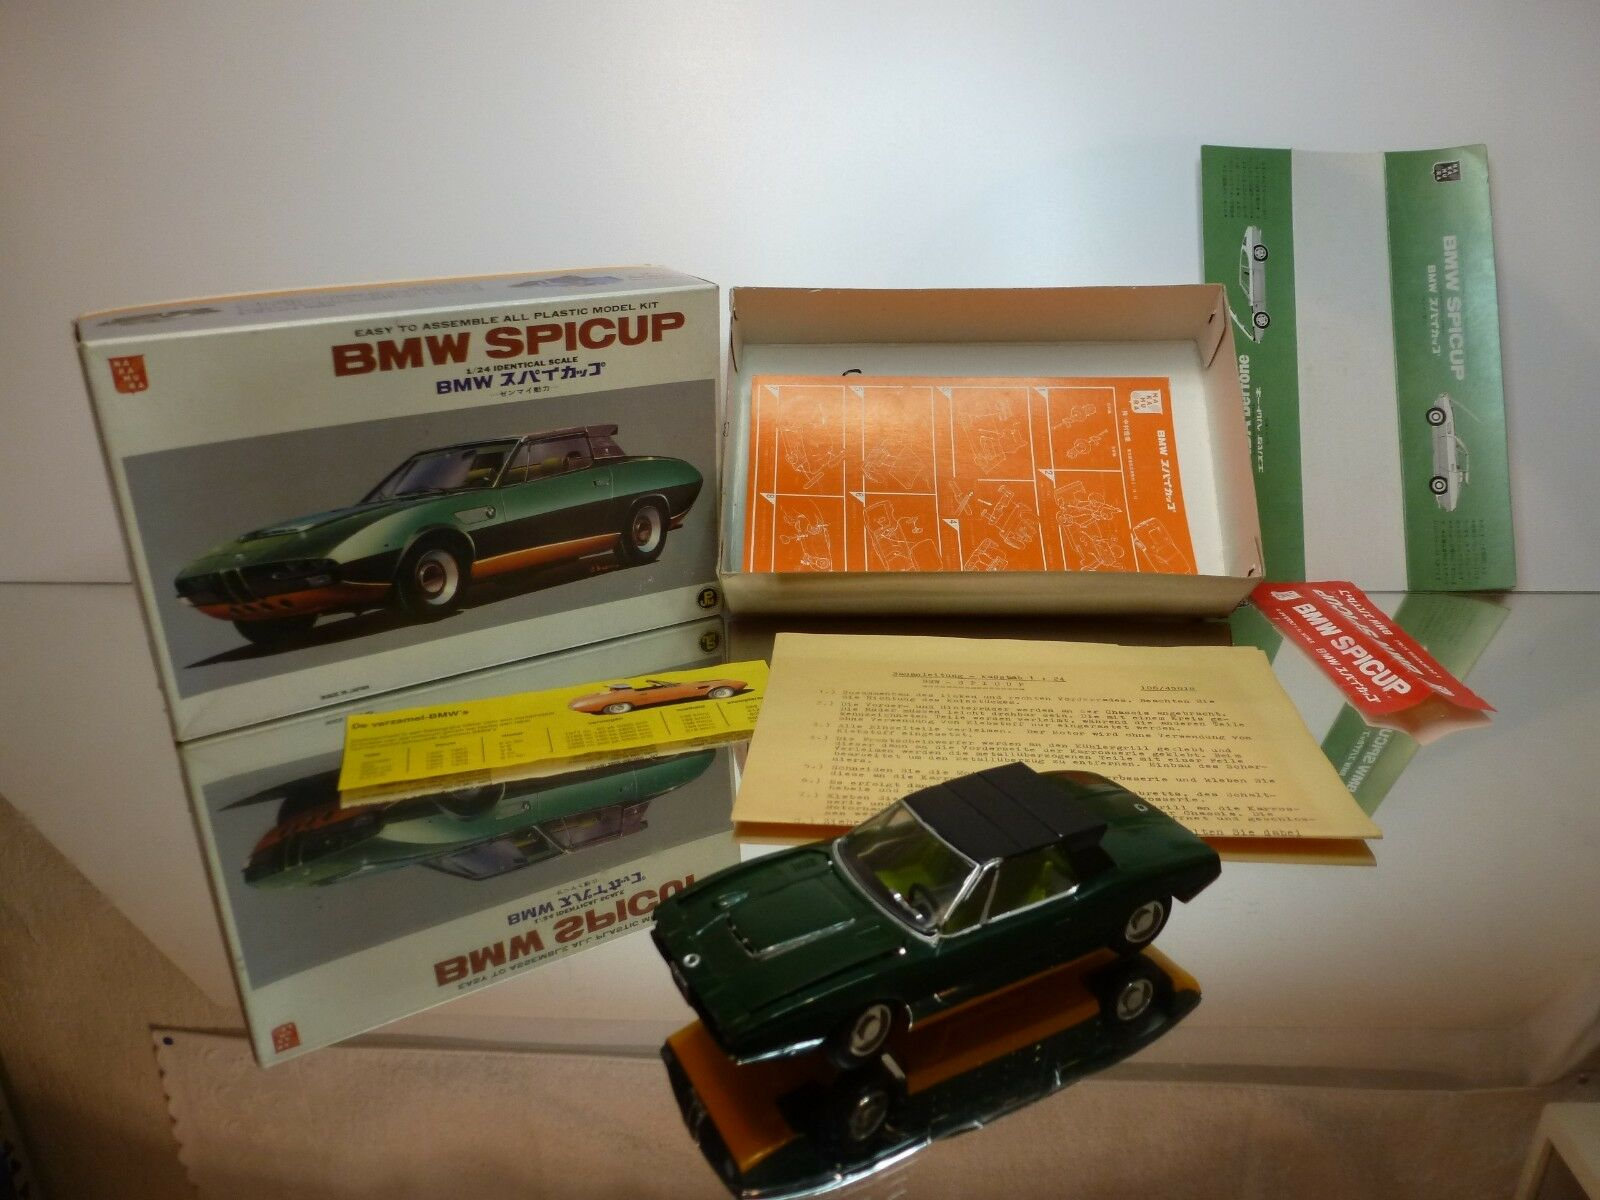 NAKAMURA KIT built BMW SPICUP - verde 1 24 - FAIR CONDITION IN BOX - WINDUP